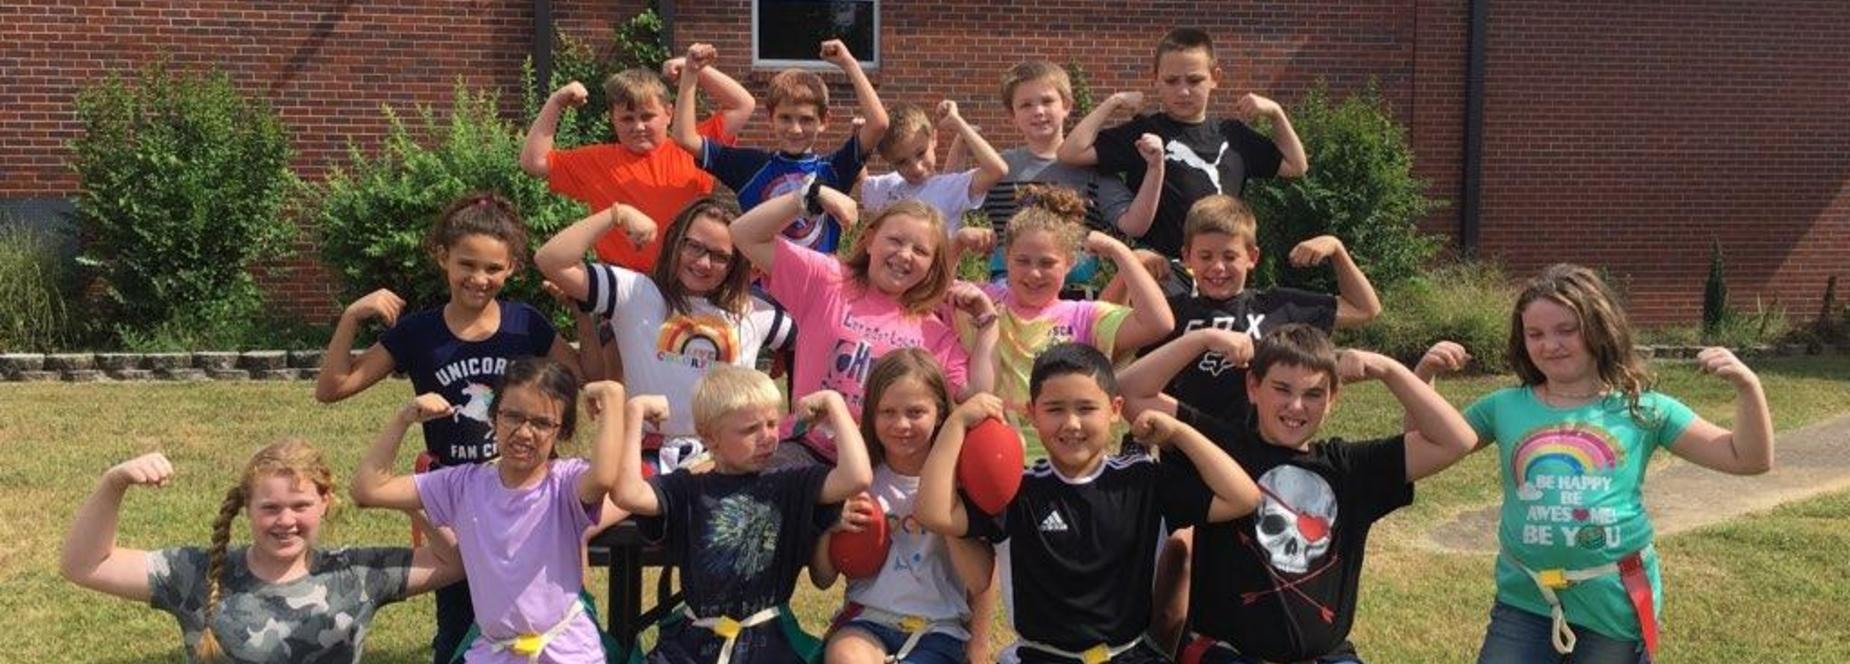 fourth grade flexing their muscles